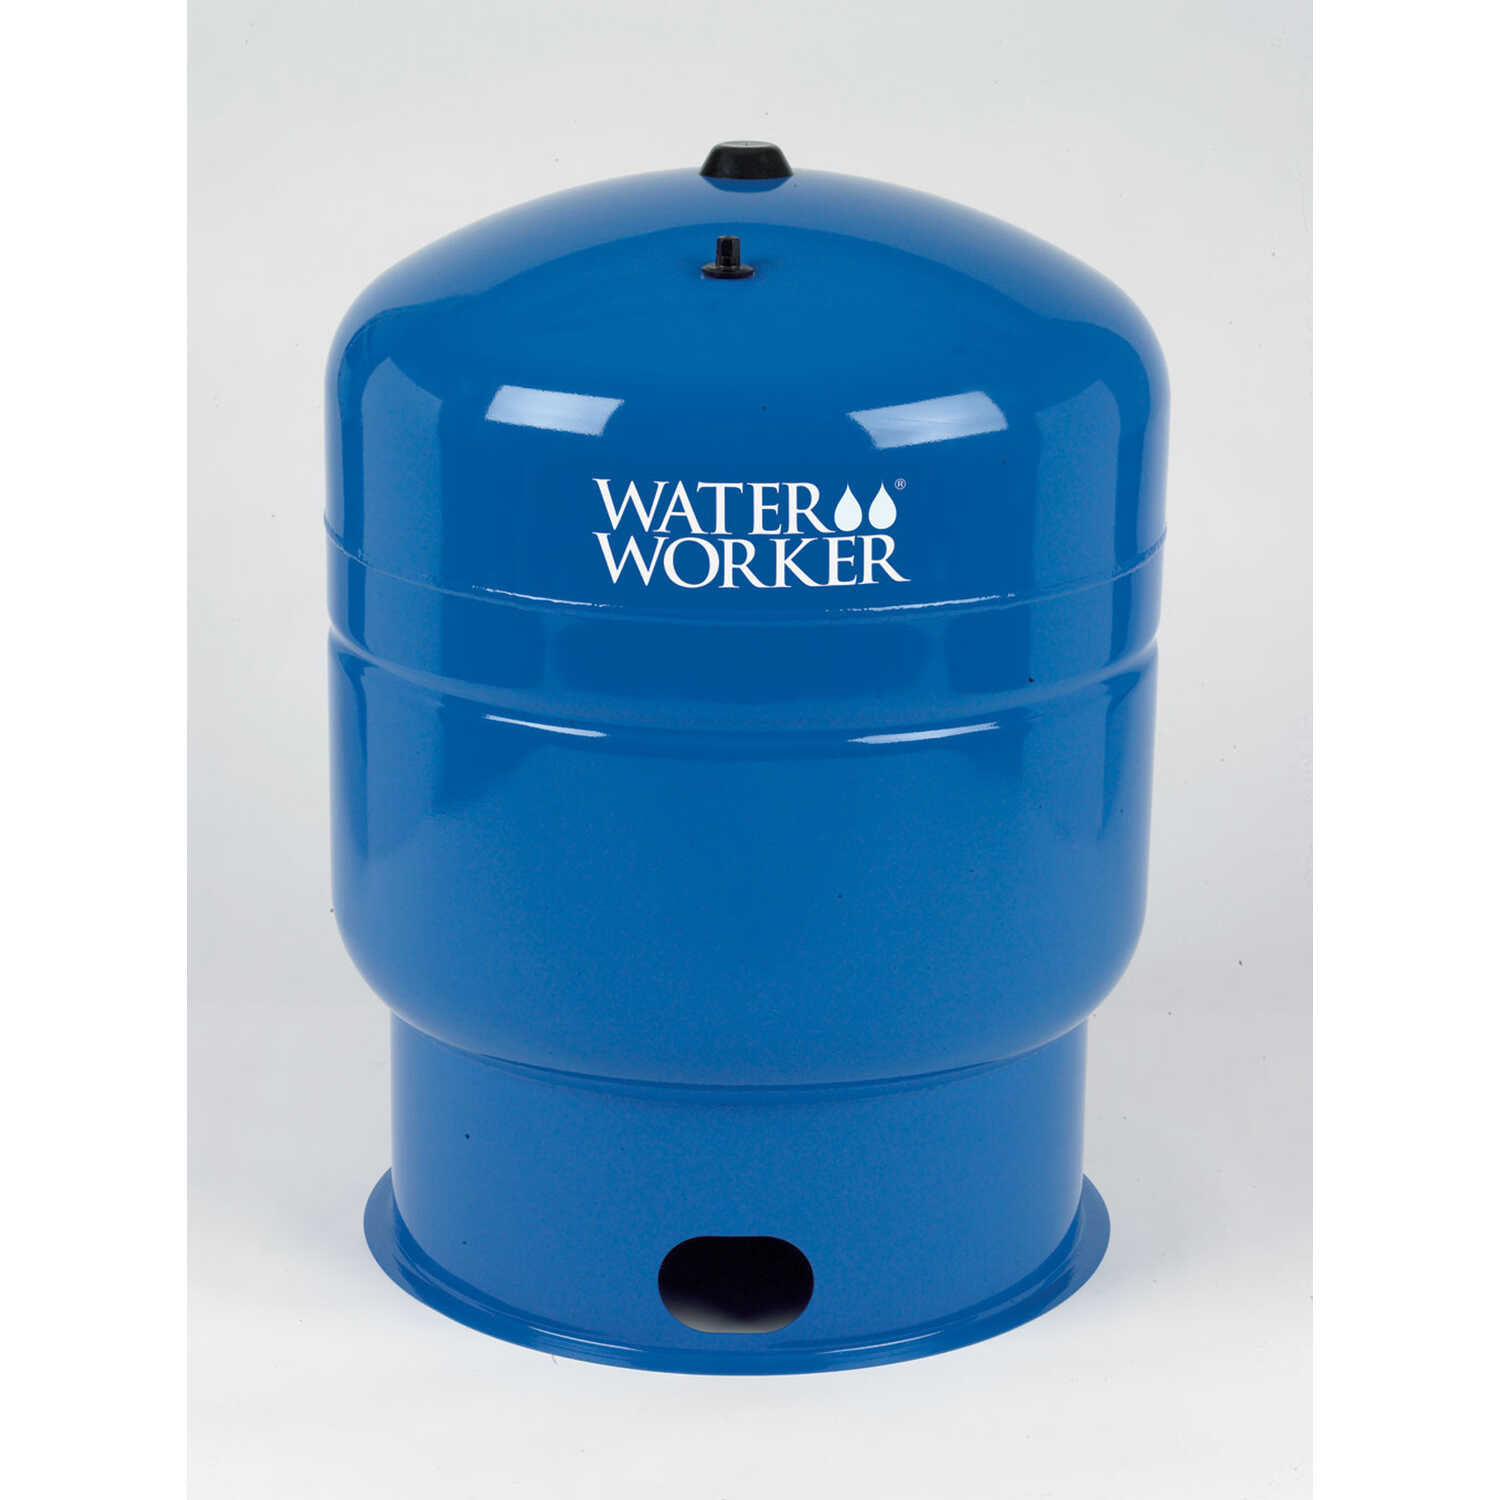 Water Worker  H2OW-TO  119  Pre-Charged Vertical Pressure Well Tank  26 in. W x 62 in. H x 26 in. L